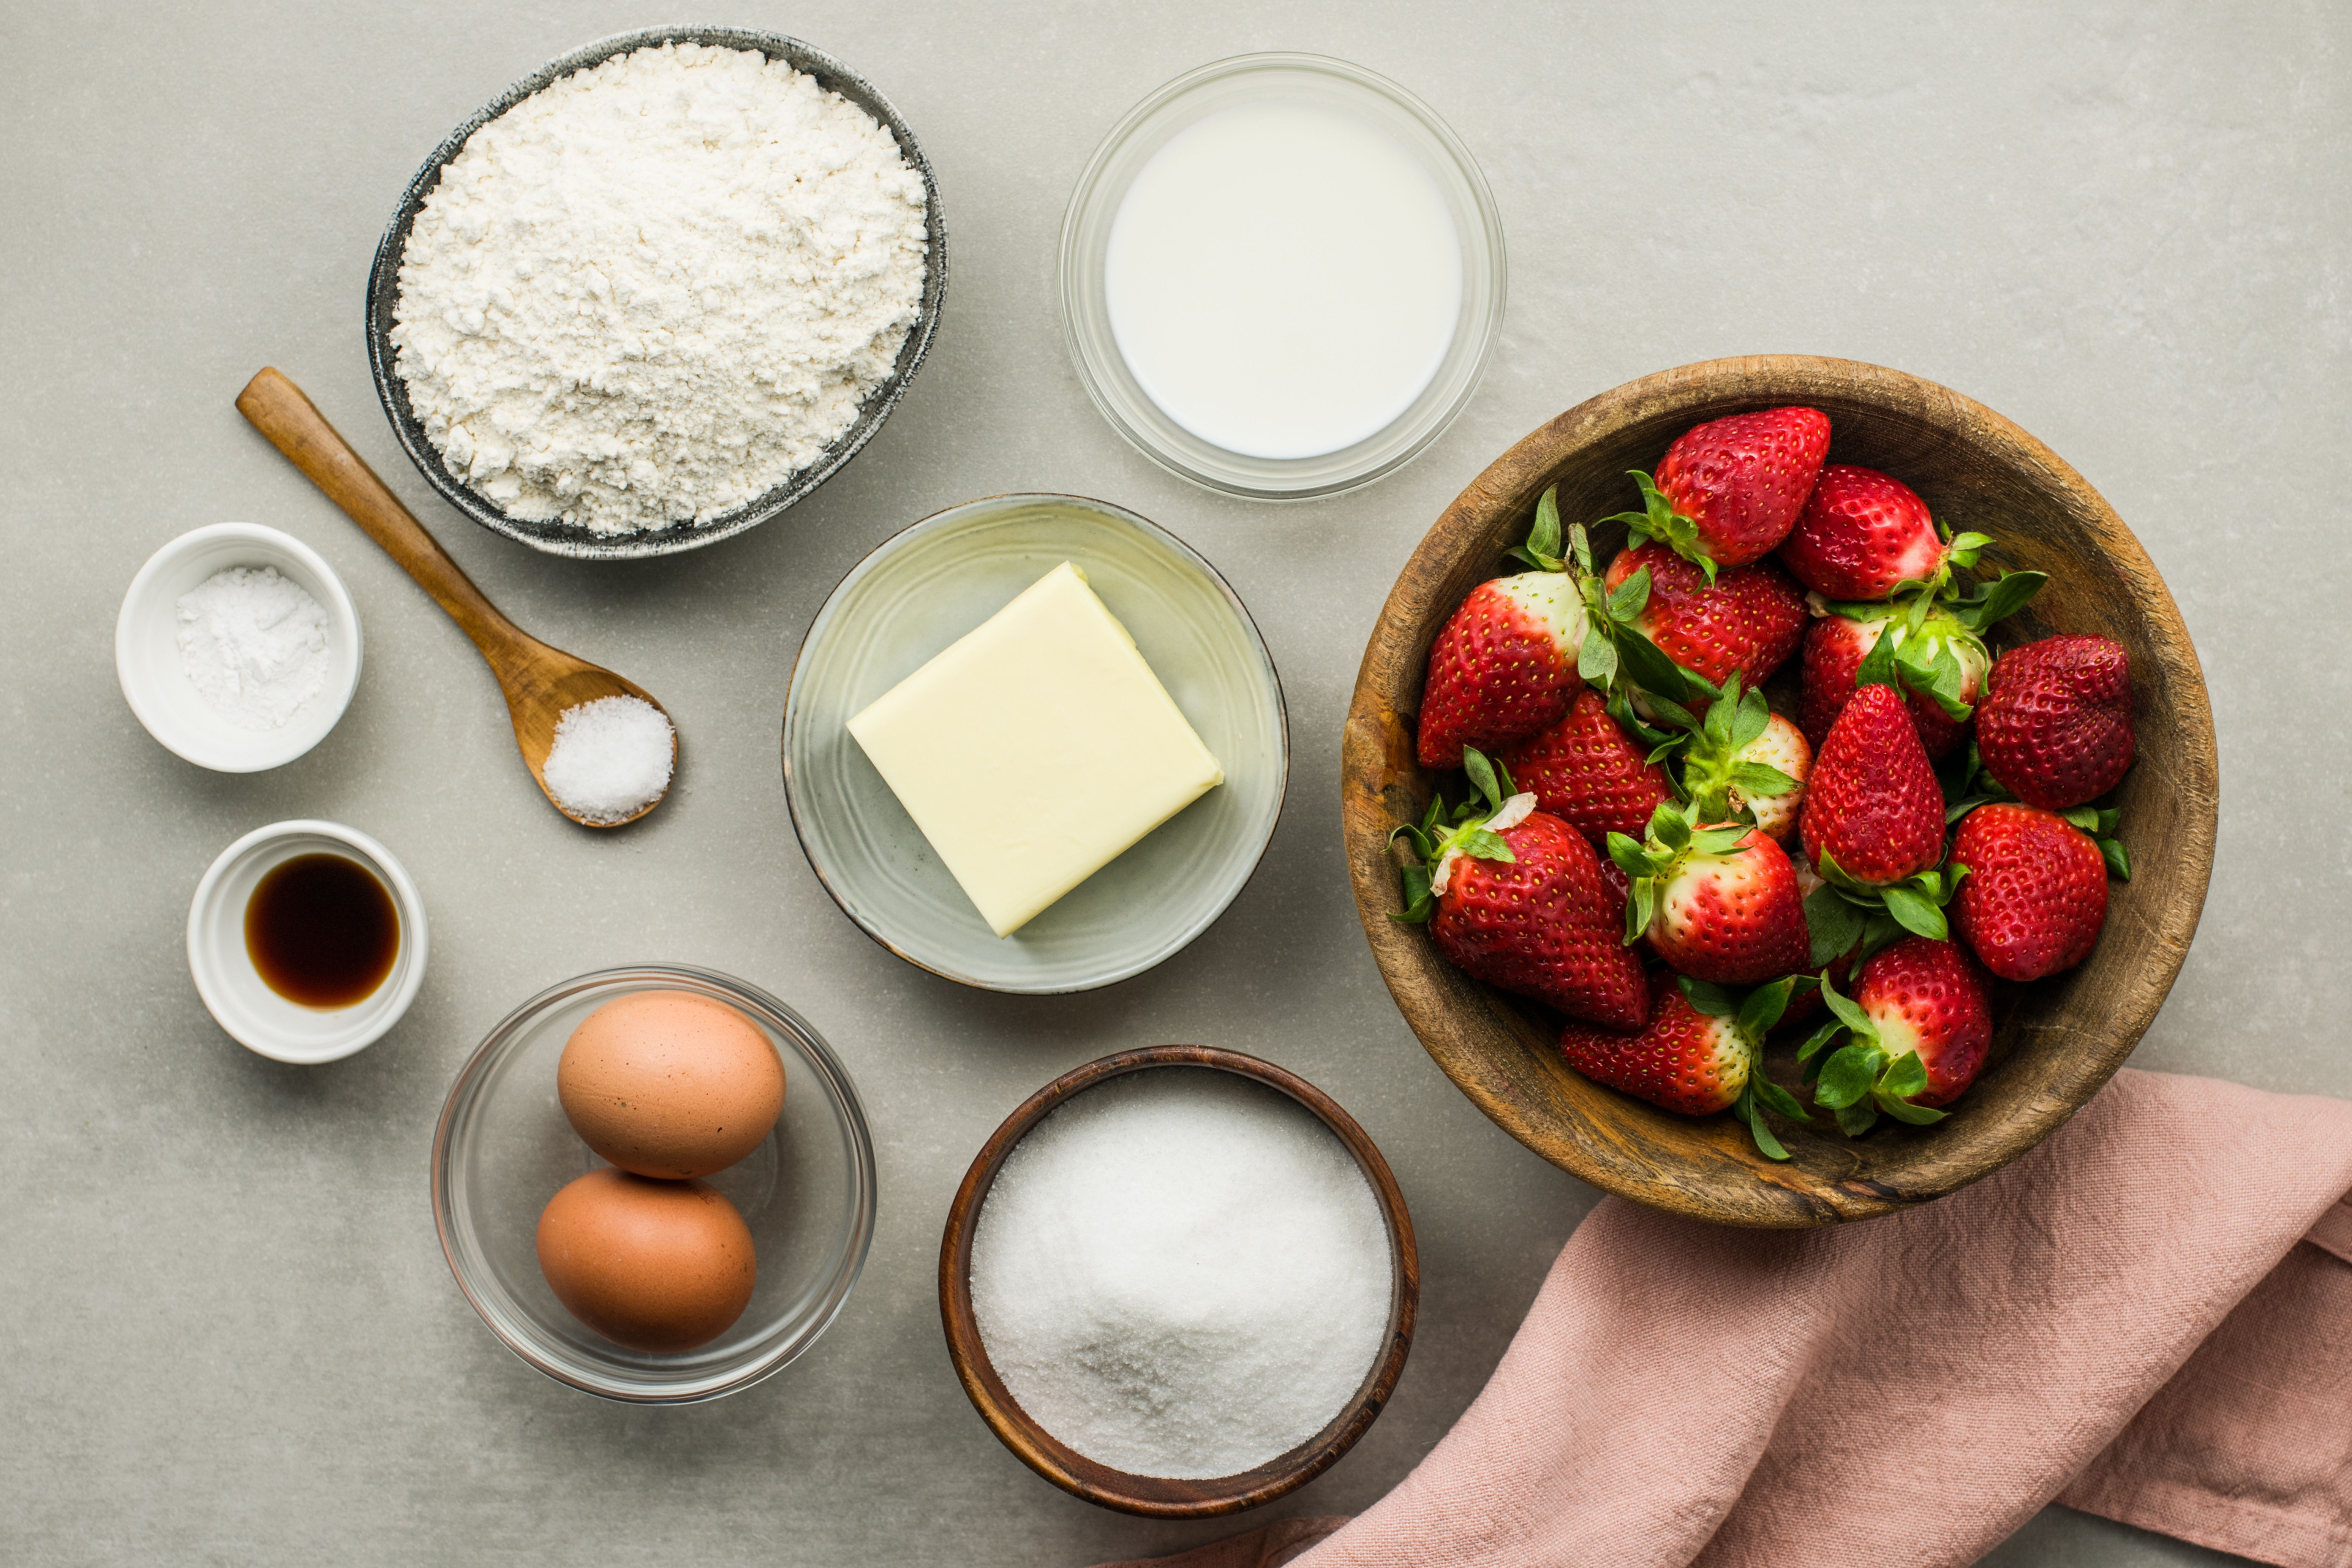 Ingredients for strawberry cupcakes